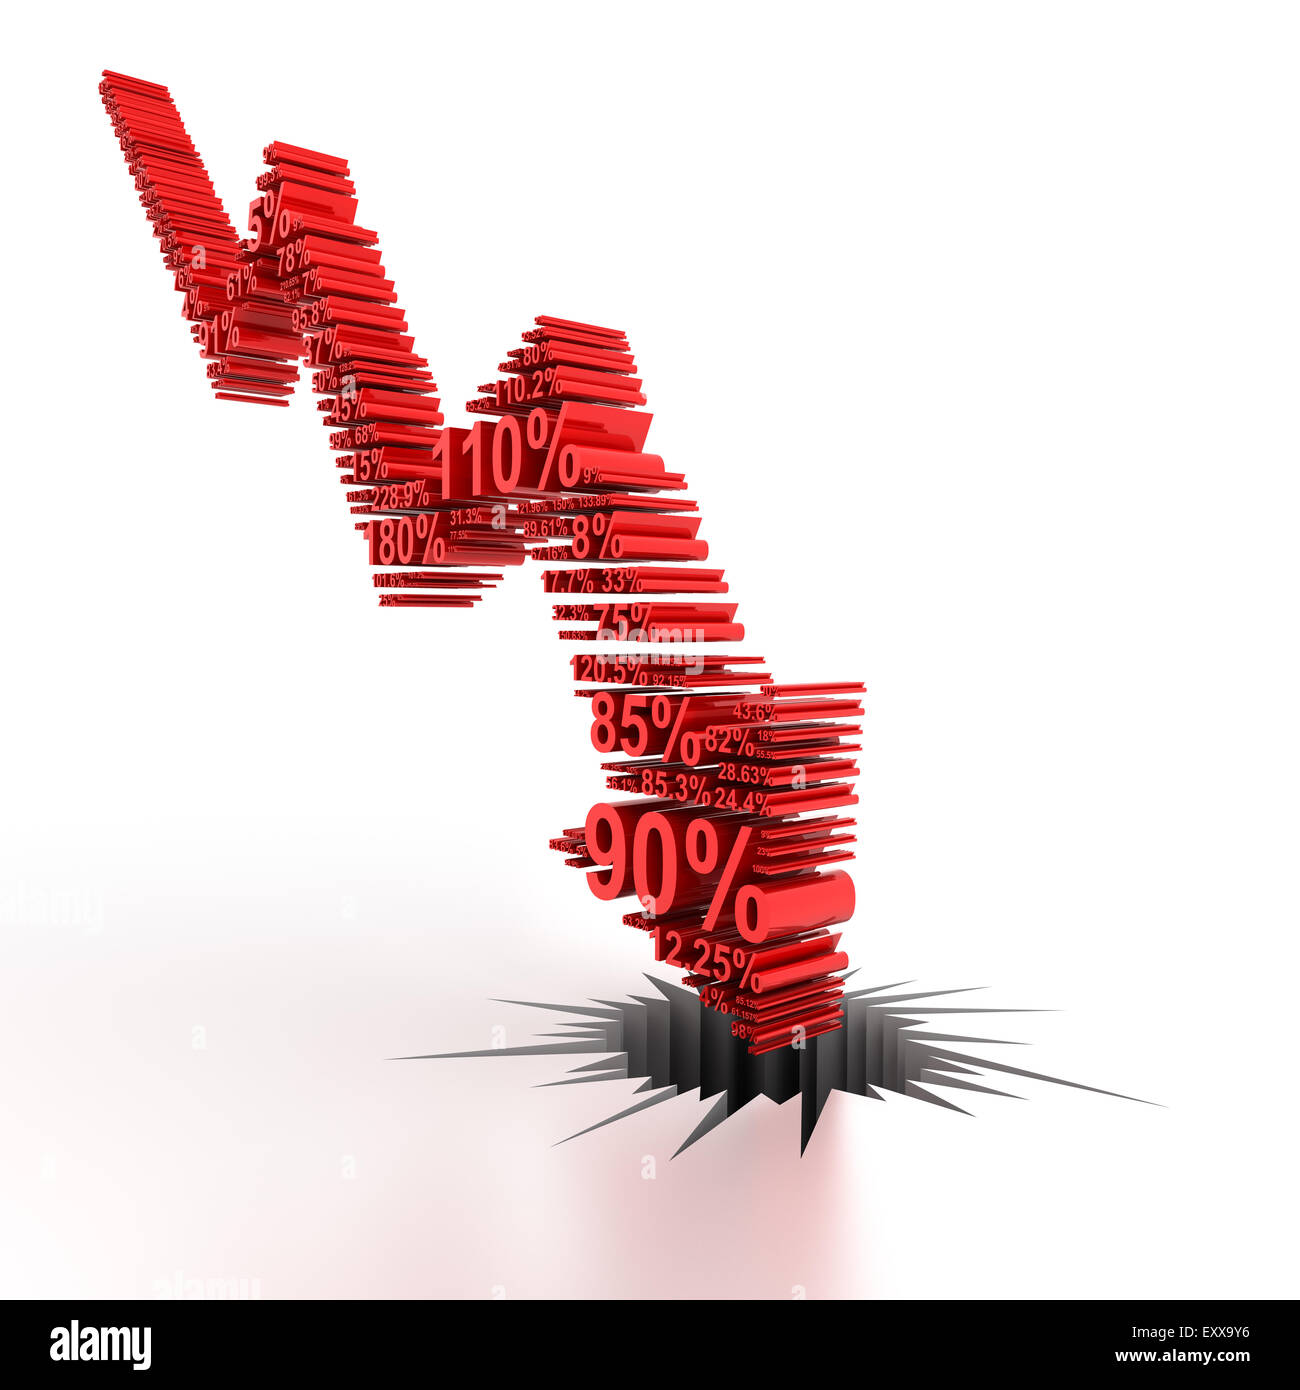 3d downward arrow formed by numbers - Stock Image